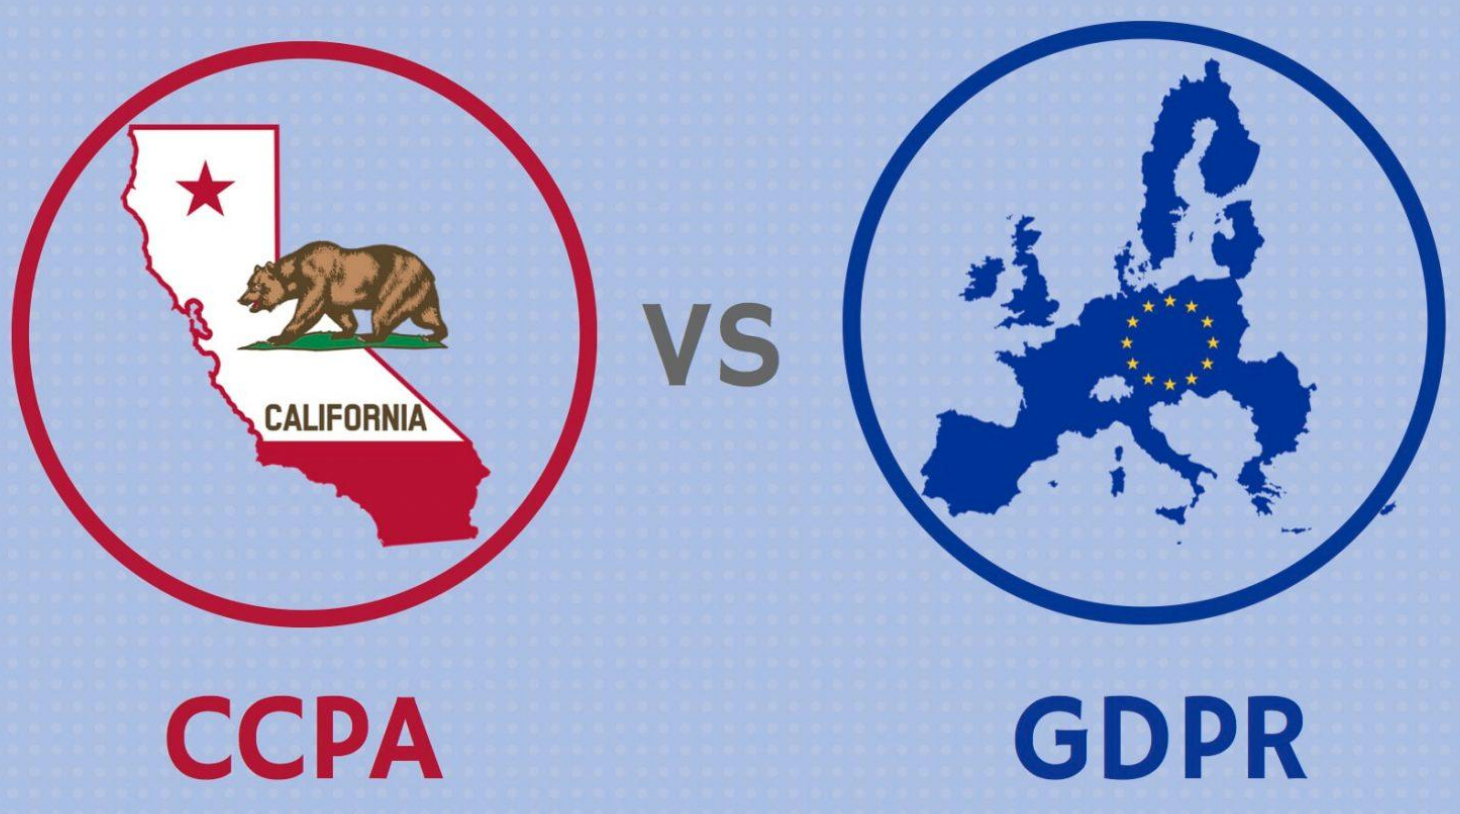 Detailed Rights Comparison of CCPA vs GDPR